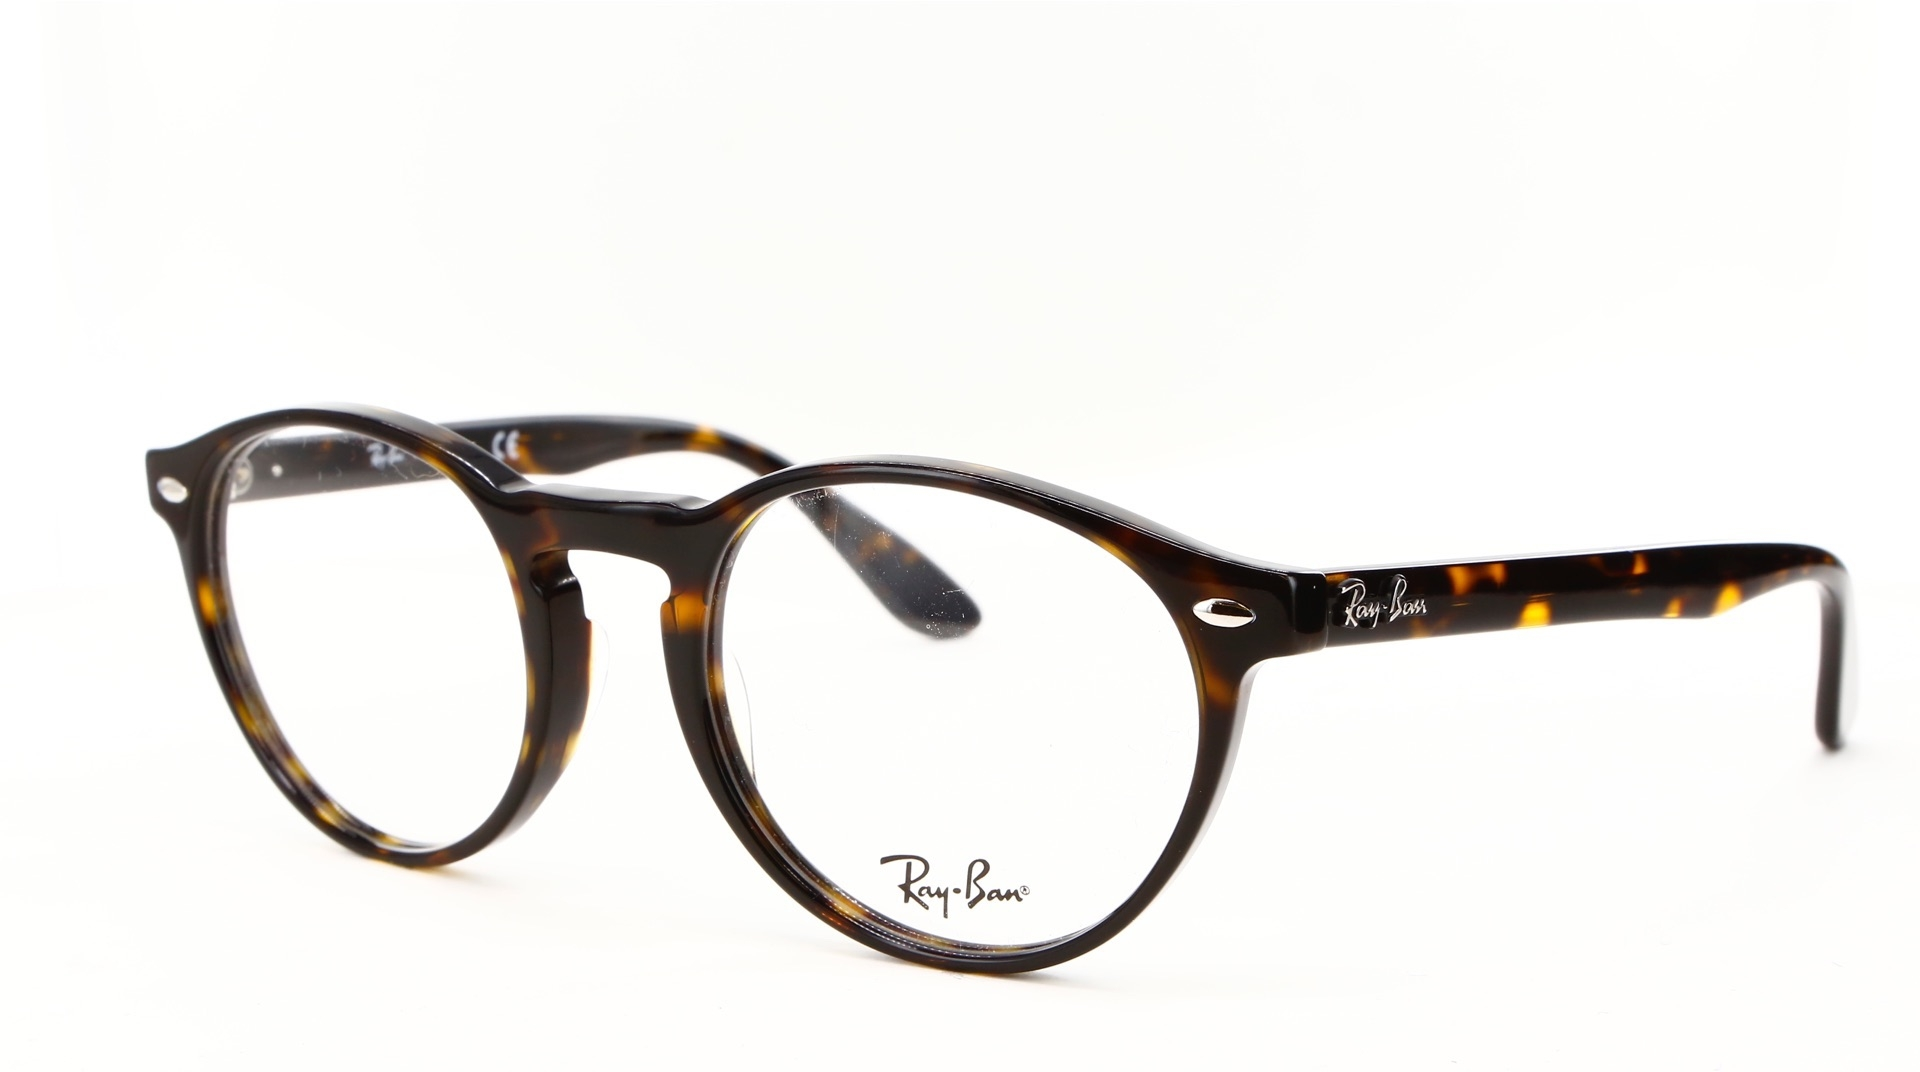 Ray-Ban - ref: 78753